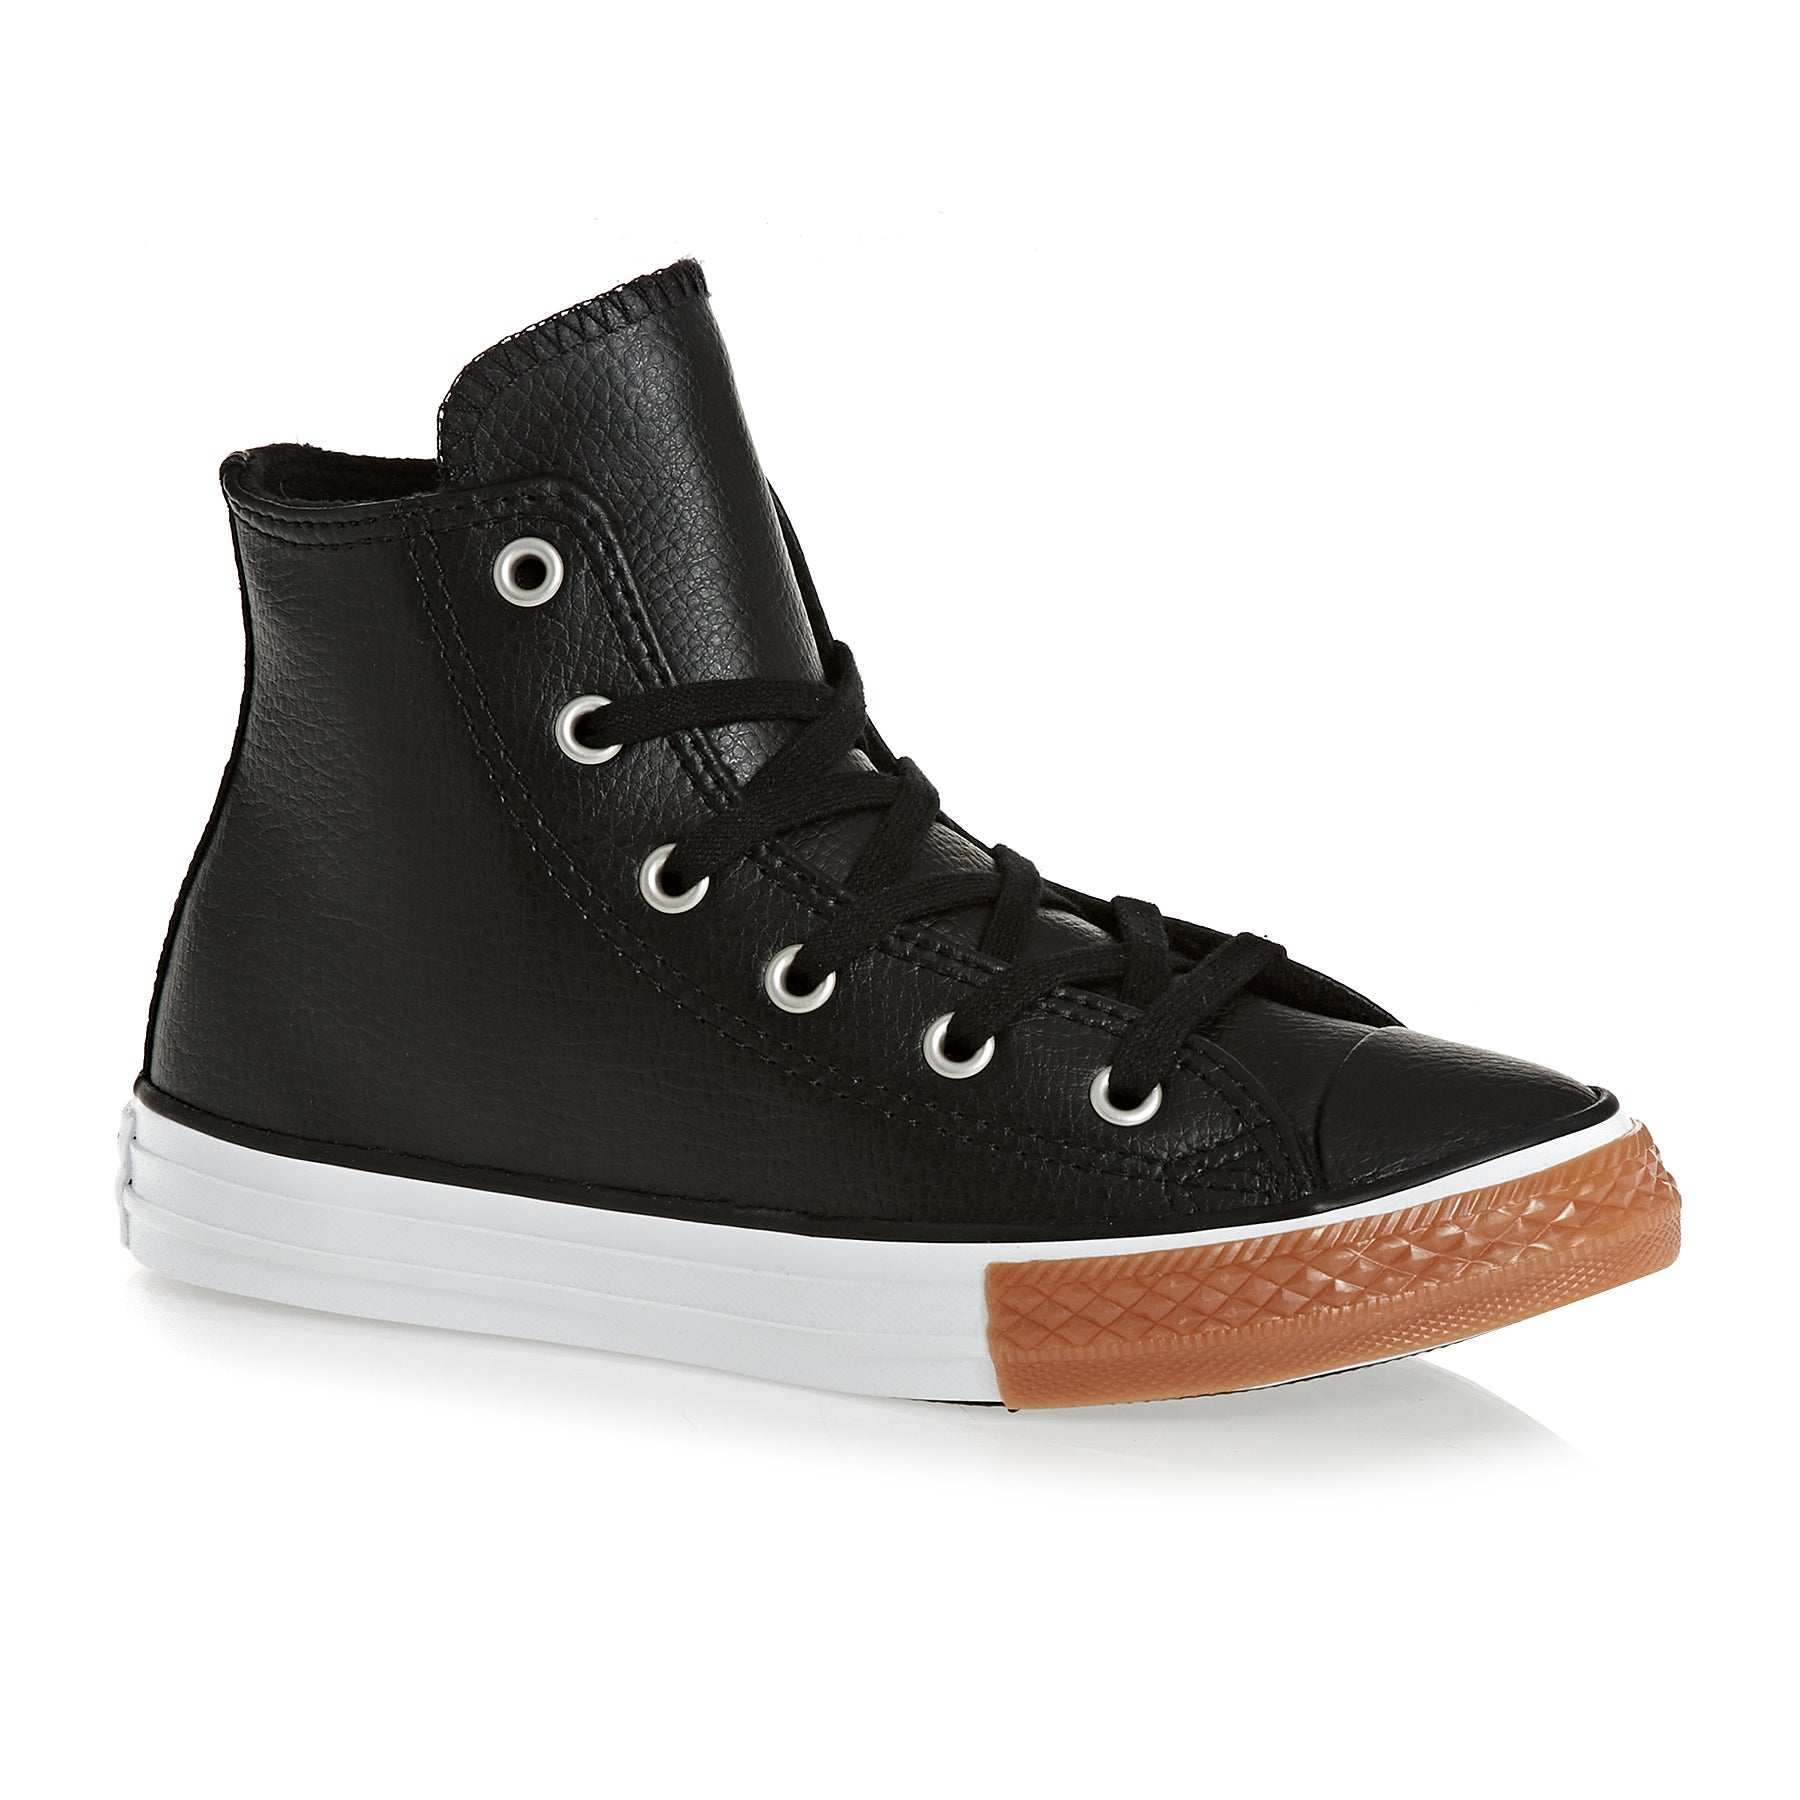 b219d3a90149 Converse Chuck Taylor All Star Youth Classic Hi Leather Kids Shoes ...